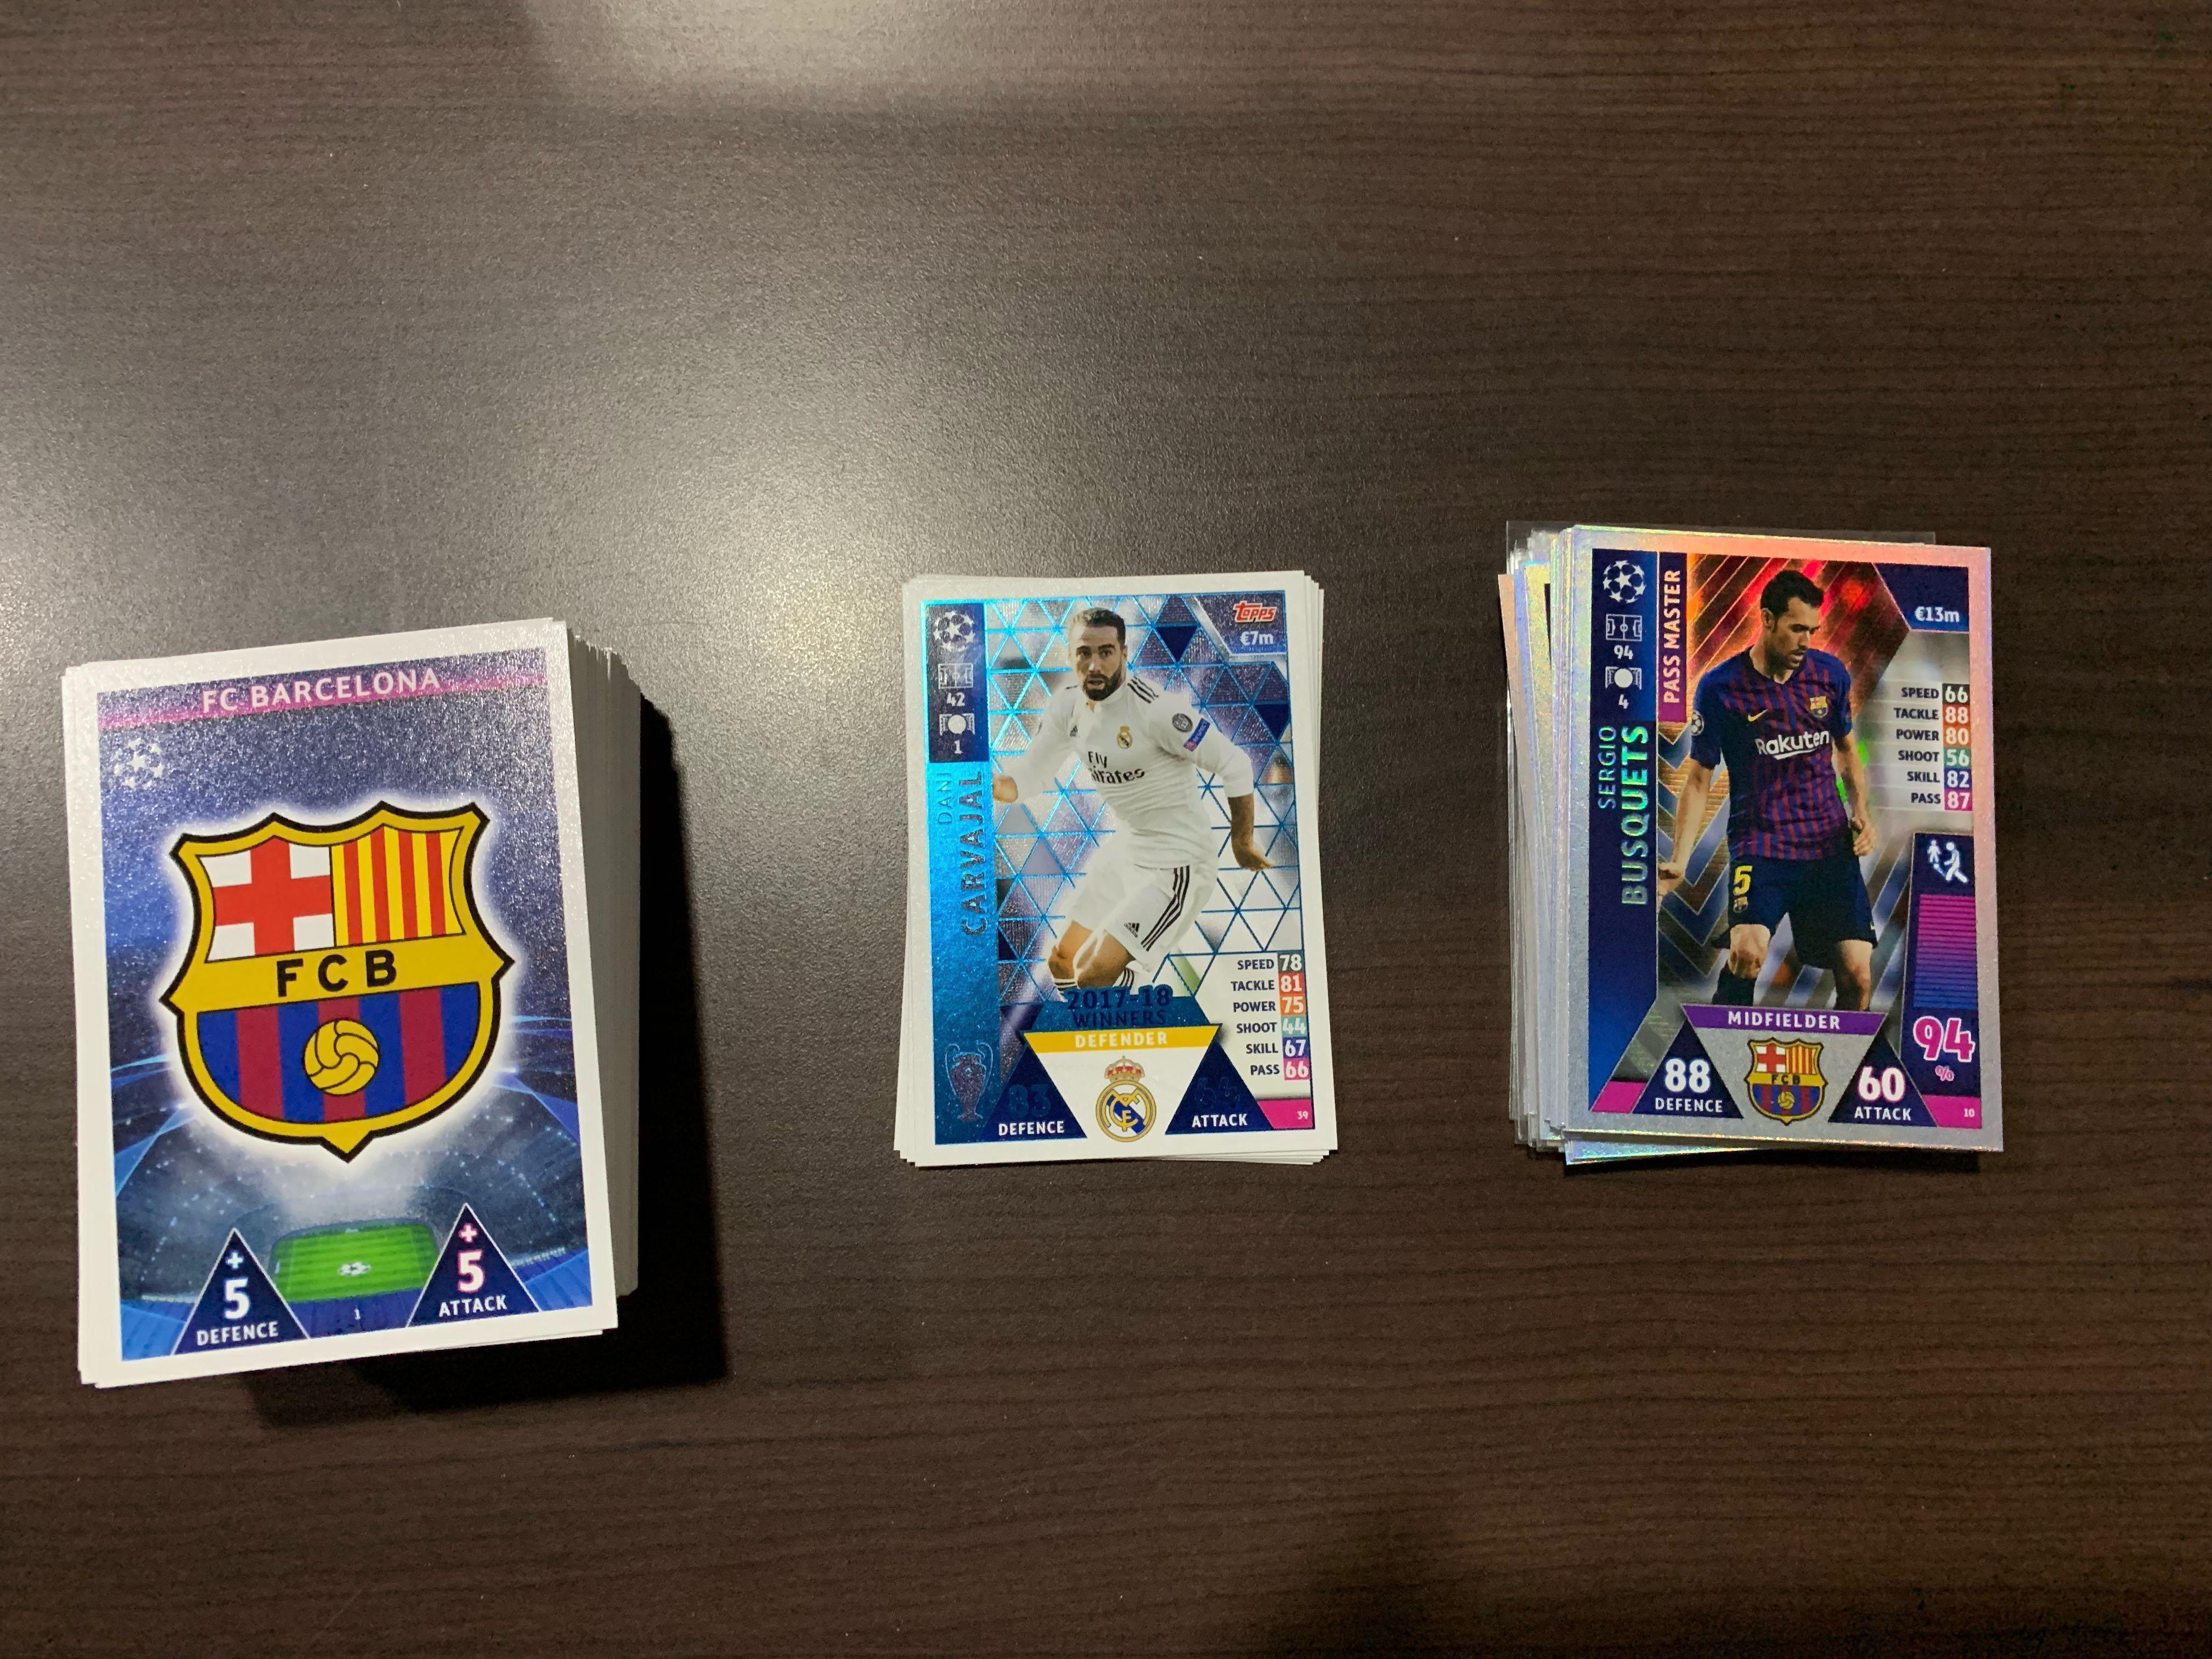 Clearance sale! Match attax 18/19 EPL/EPL extra/UCL/UCL RTM